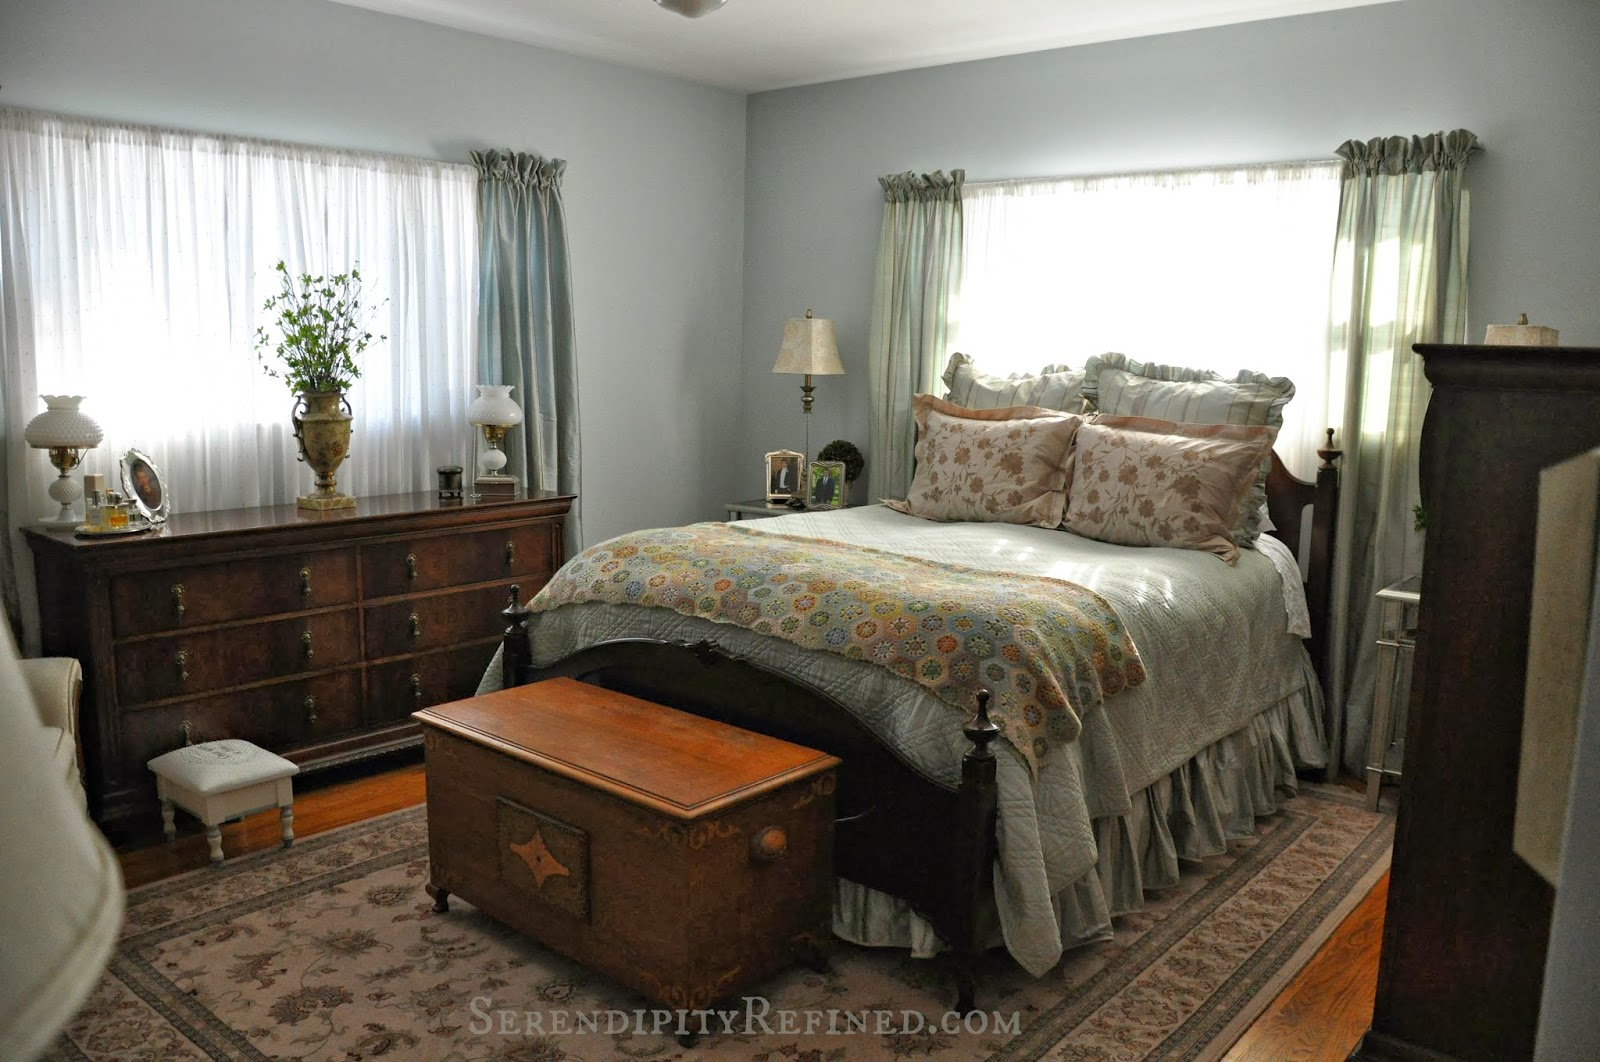 Serendipity Refined Blog: Bedroom Progress Photos: French